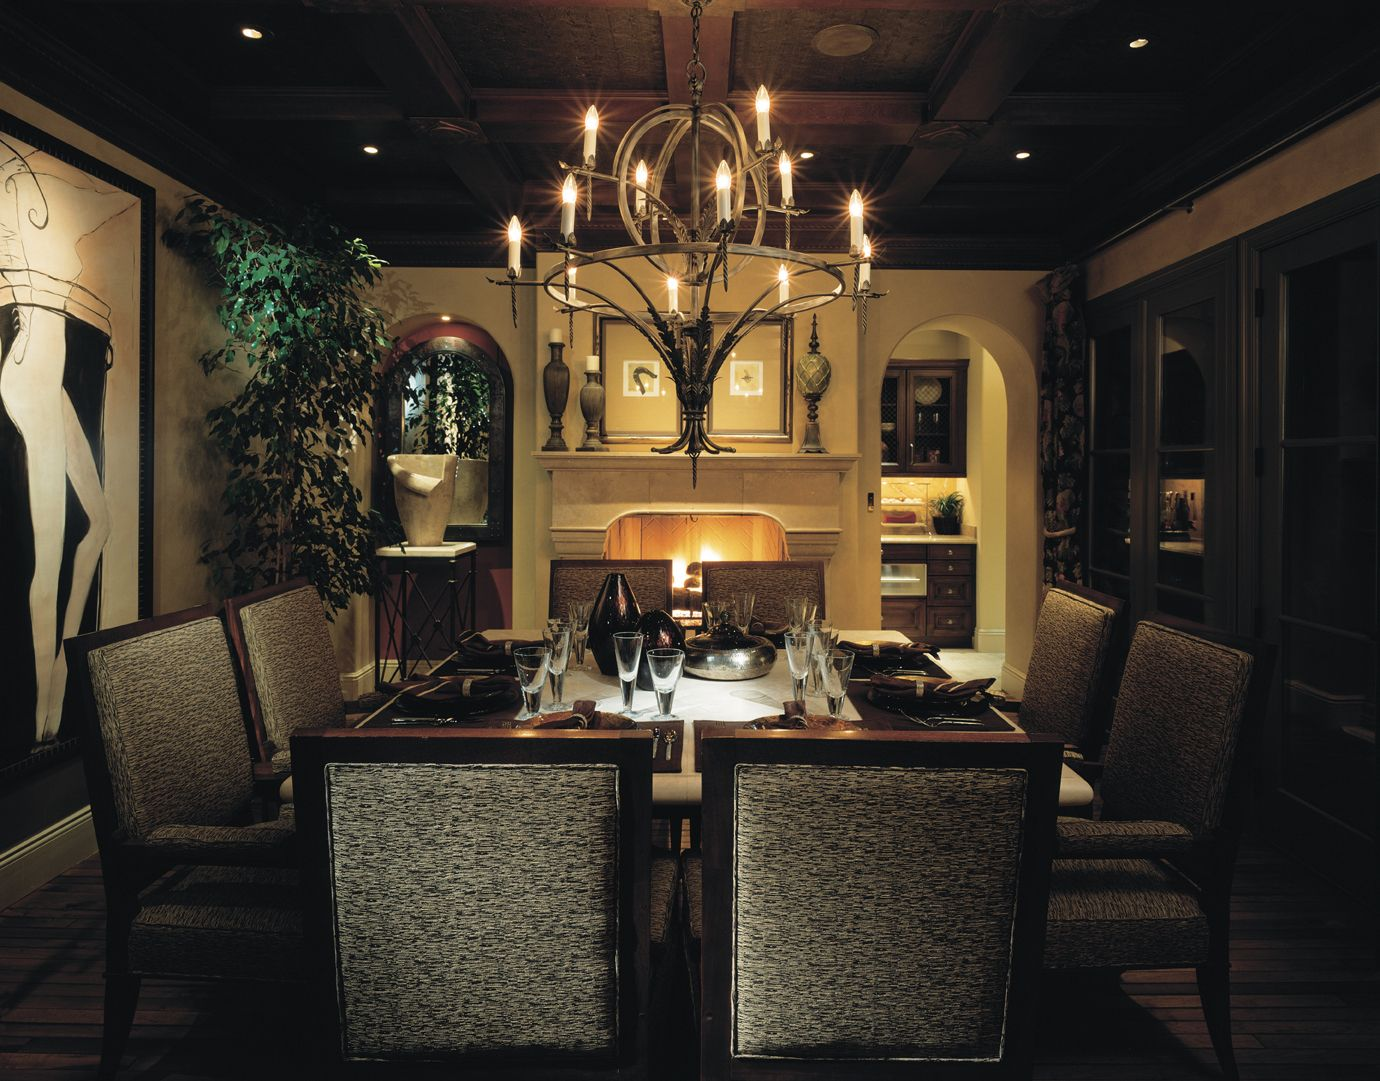 dining room lighting design for romantic nuance - Dining Room Light Fixtures